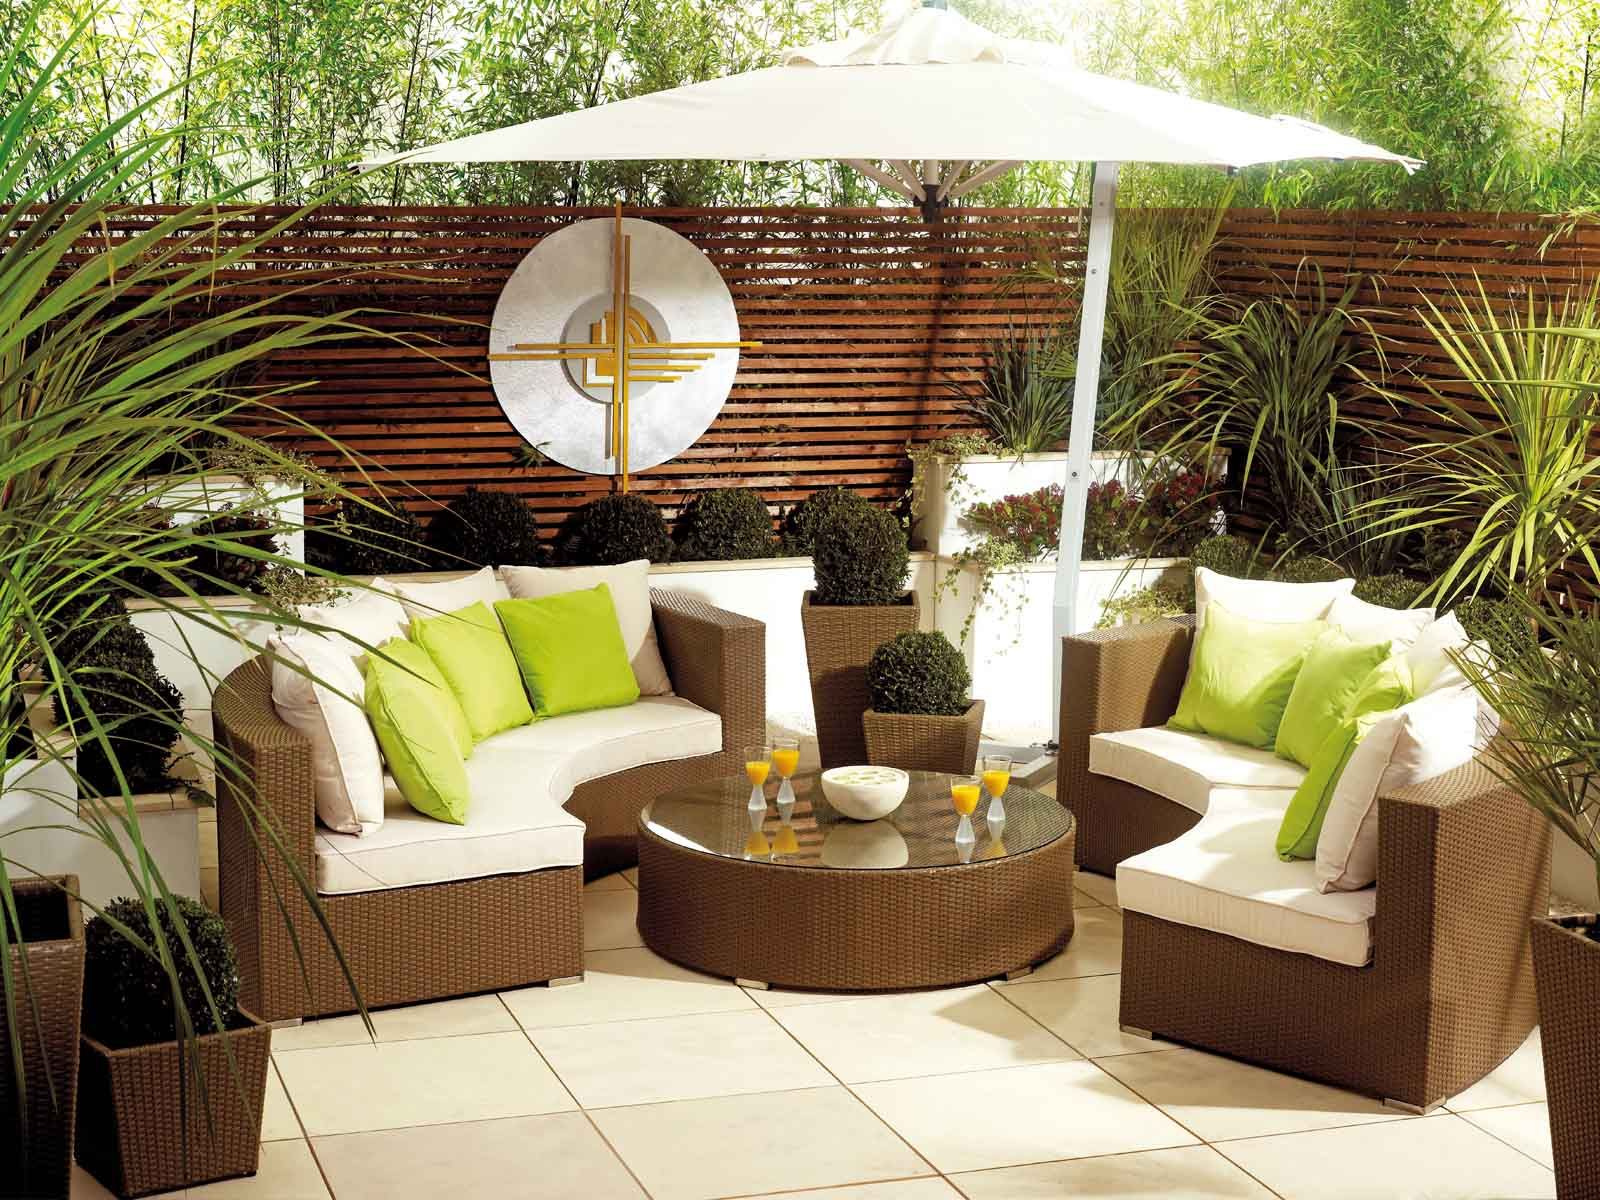 20 Beautiful Outdoor Living Room Designs That Will Delight